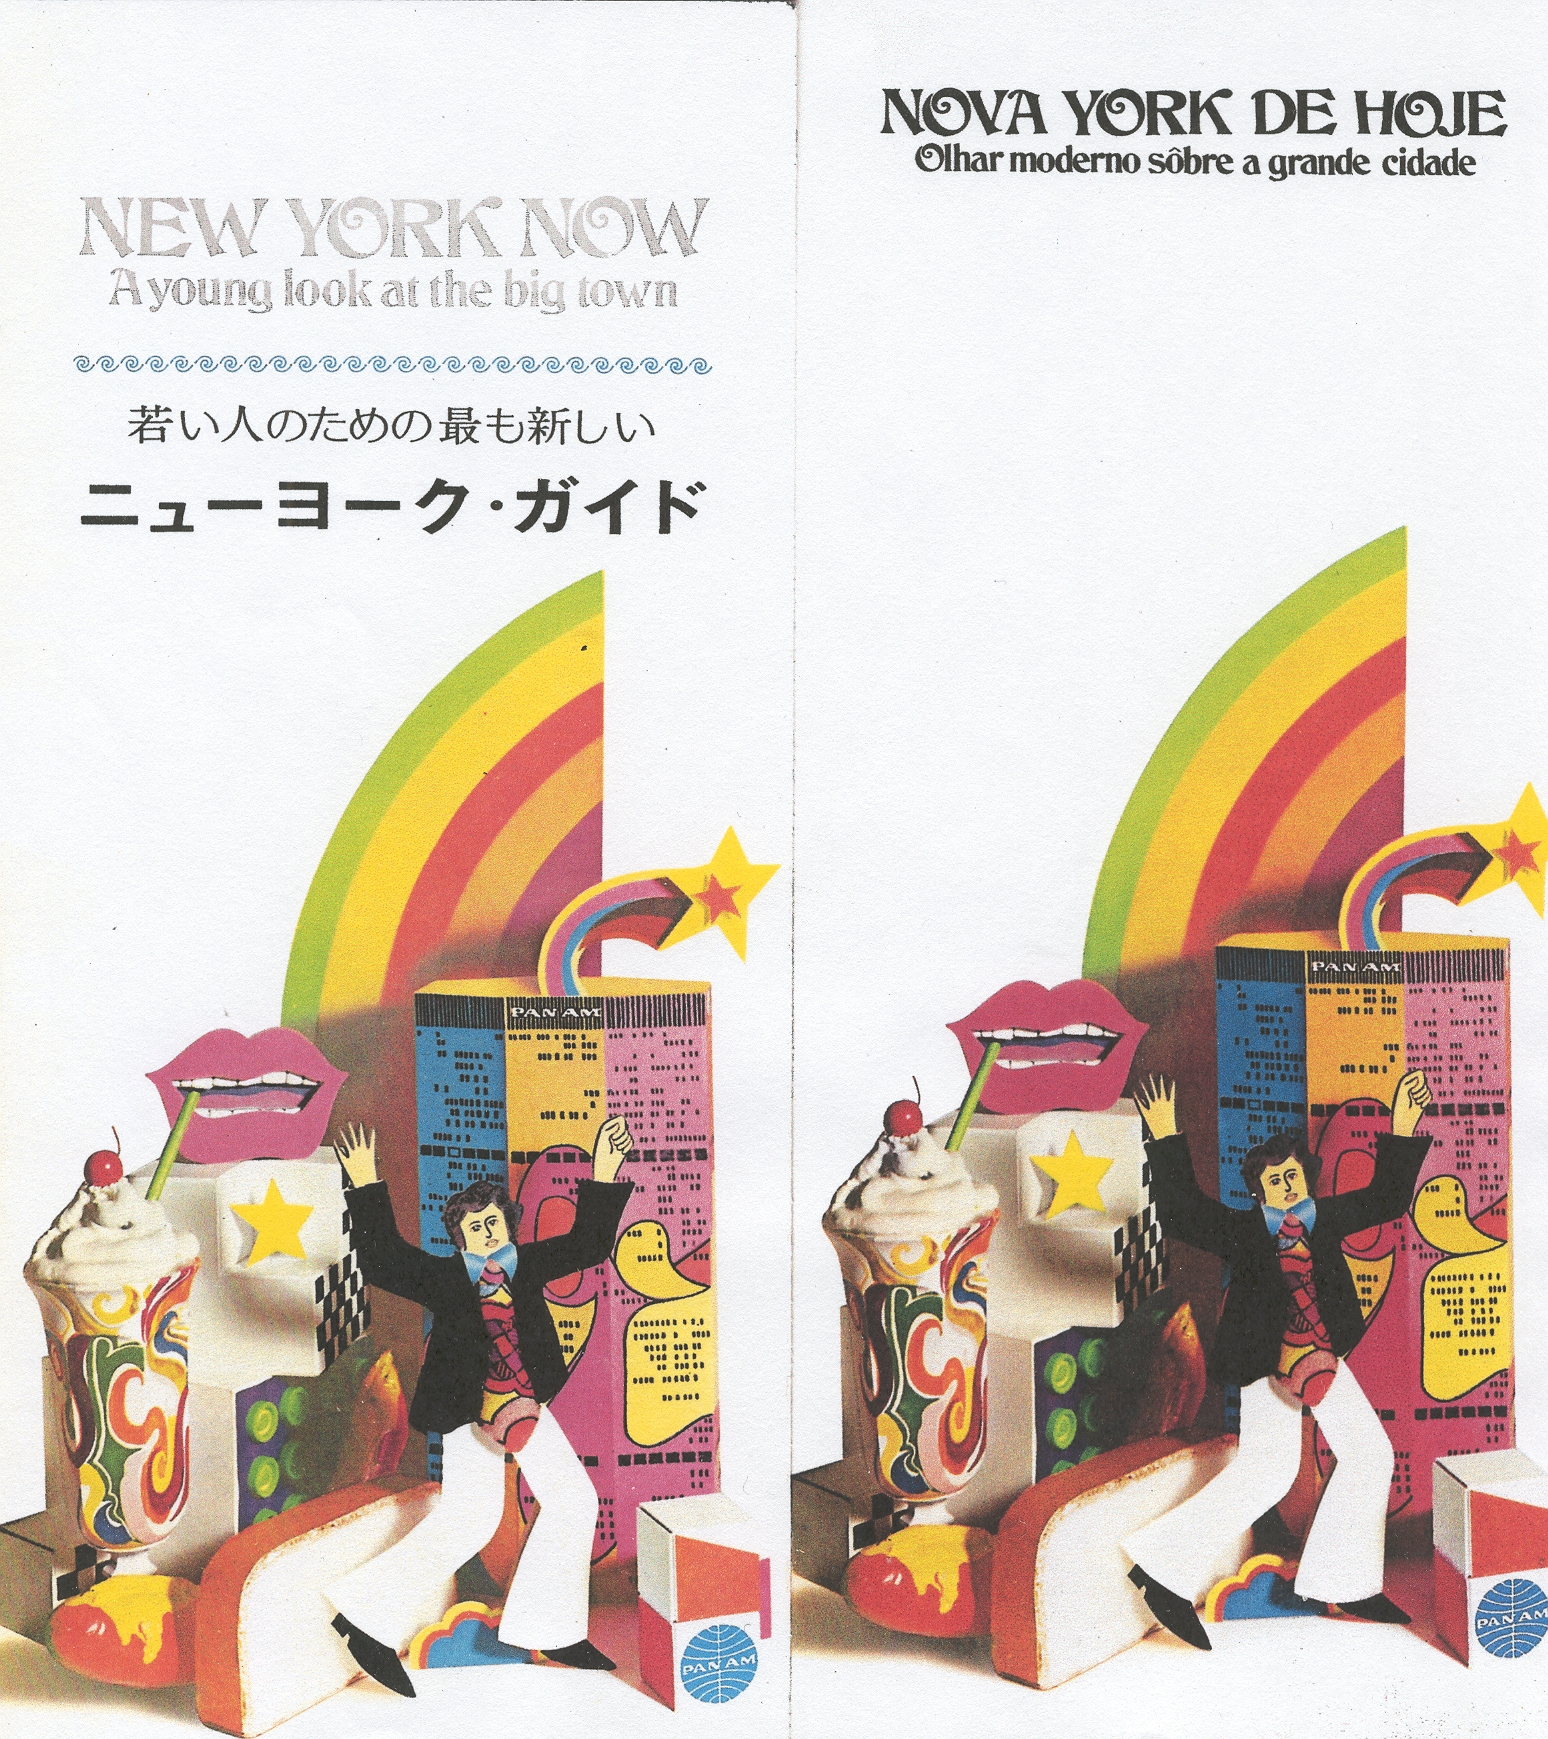 Sample brochure covers promoting New York in Japanese  from the early 1970s